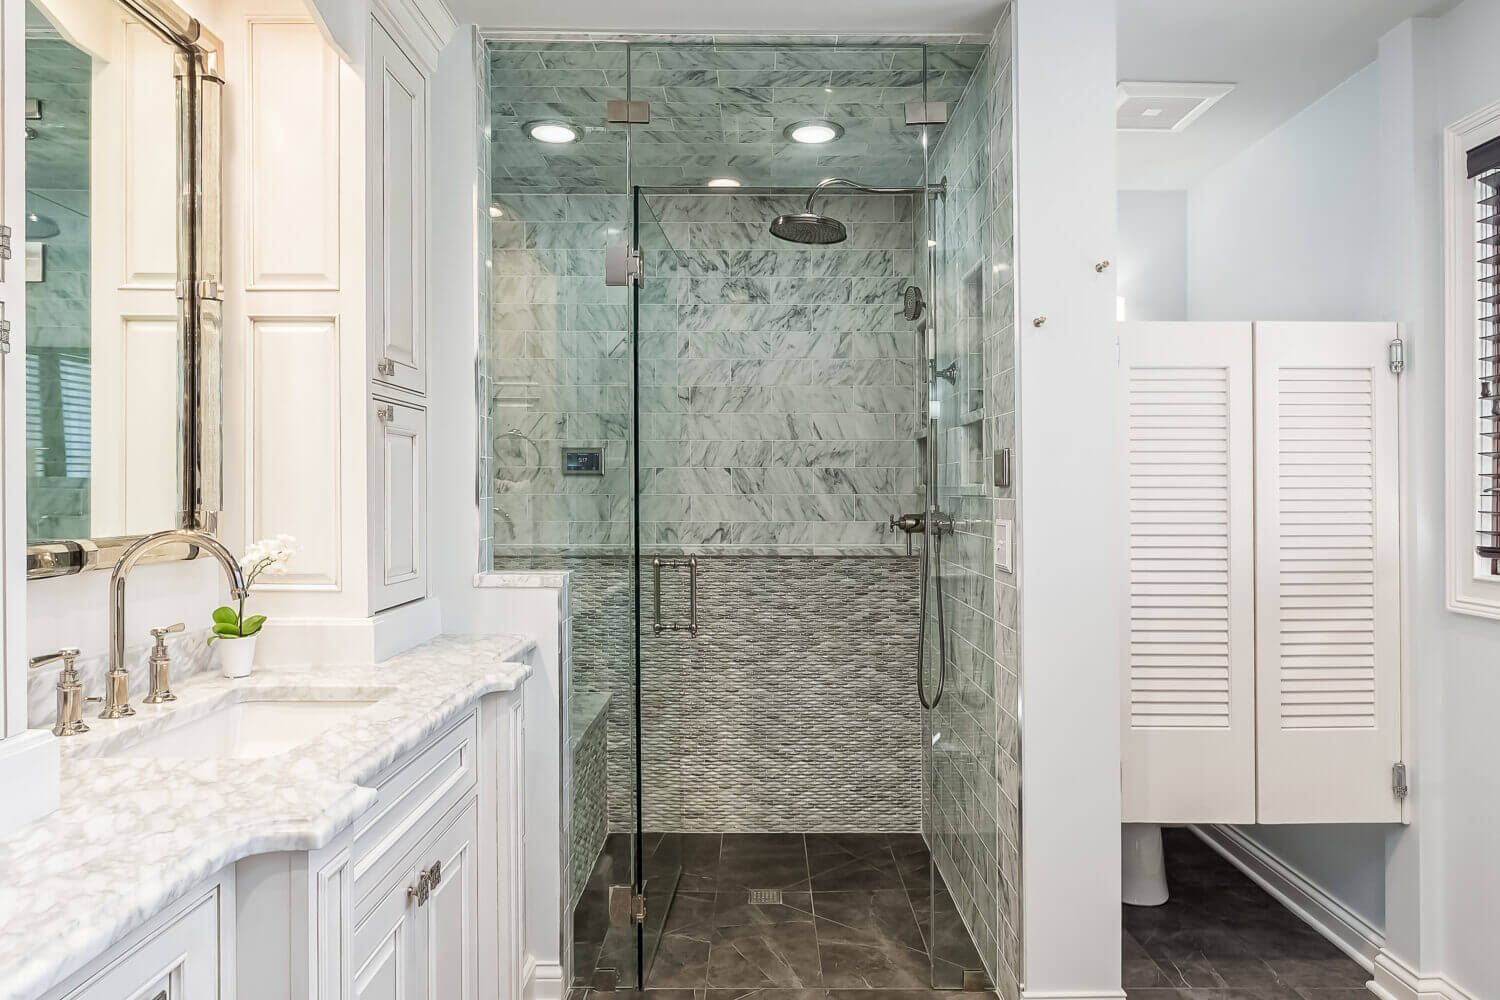 Inspiration Gallery Dura Supreme Cabinetry In 2021 Inset Cabinet Doors Dream Bath Bath Remodel [ 1000 x 1500 Pixel ]